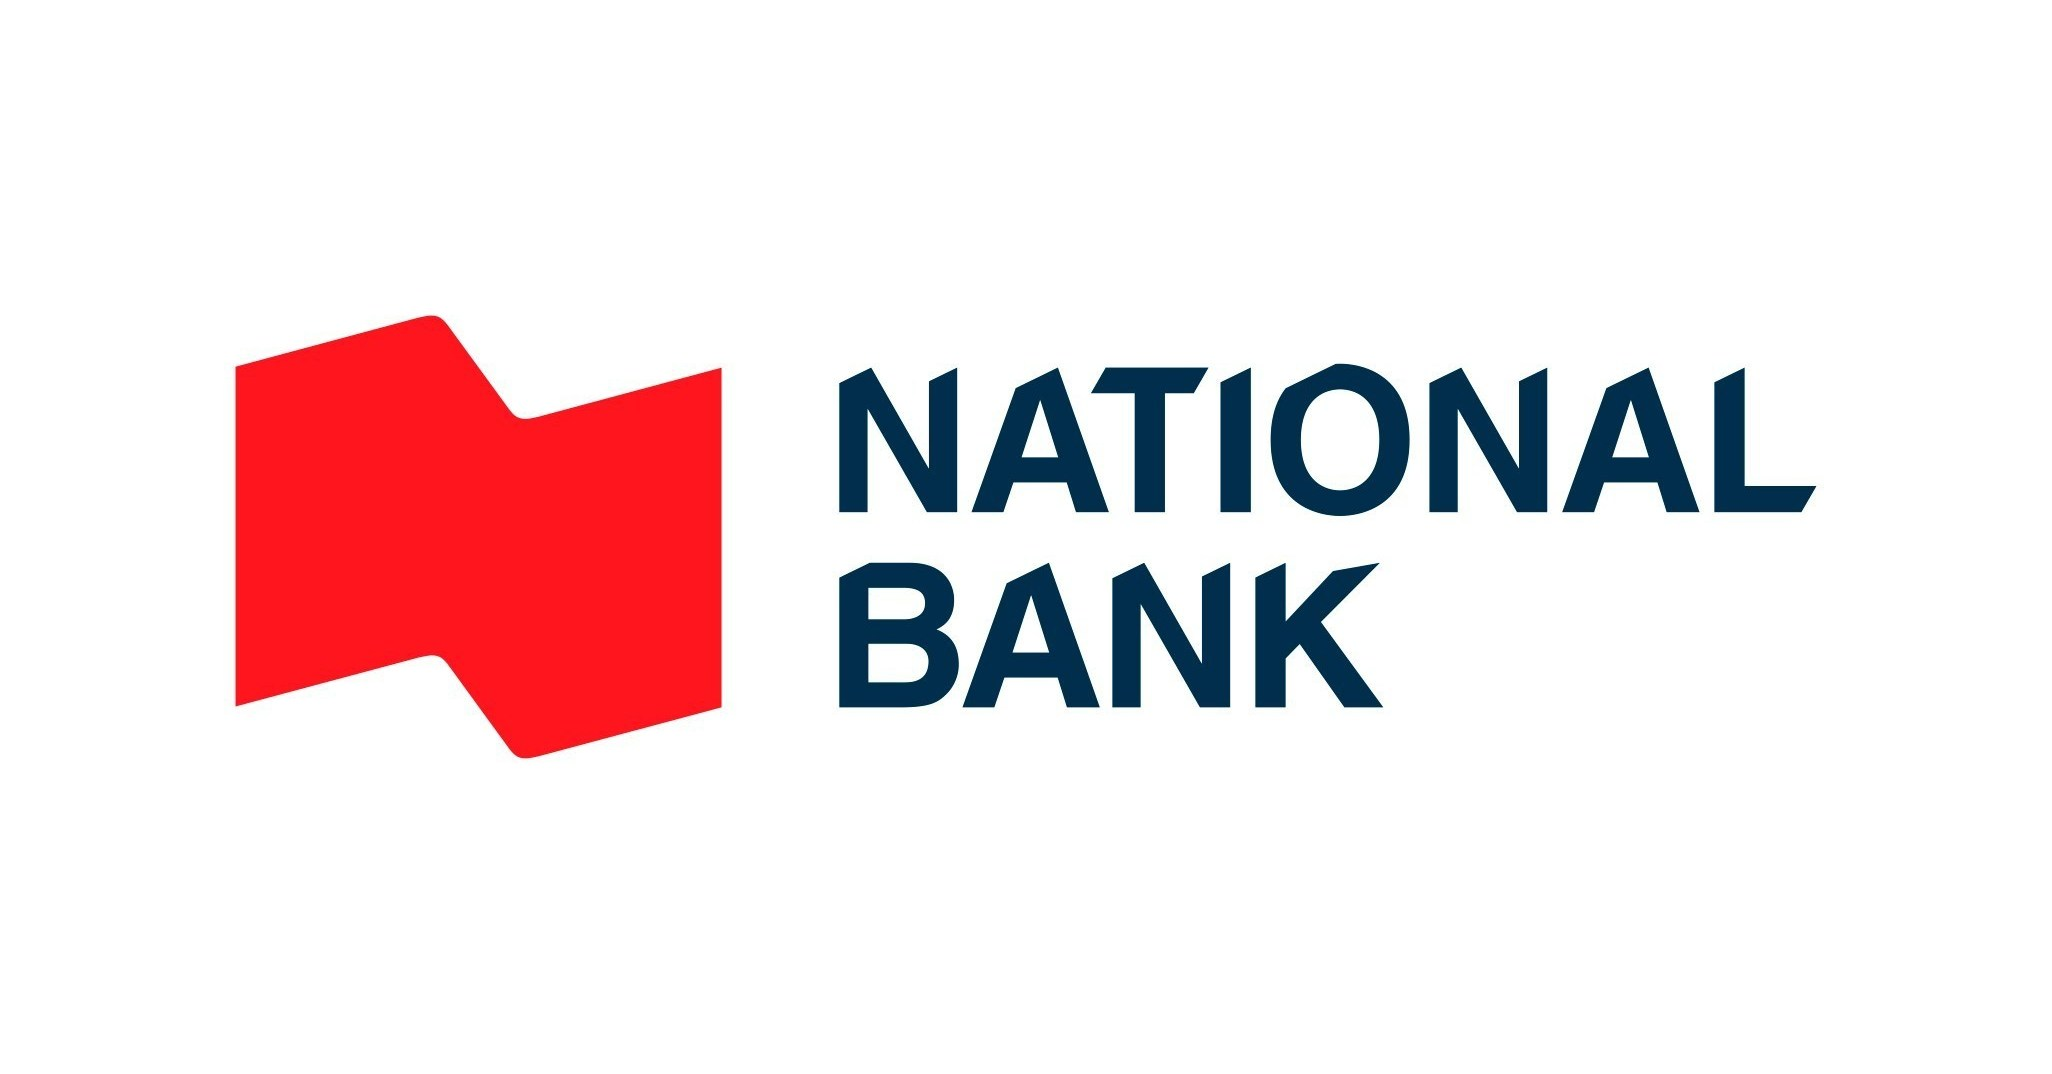 National Bank of Canada announces the appointment of Laurent Ferreira as Chief Operating Officer